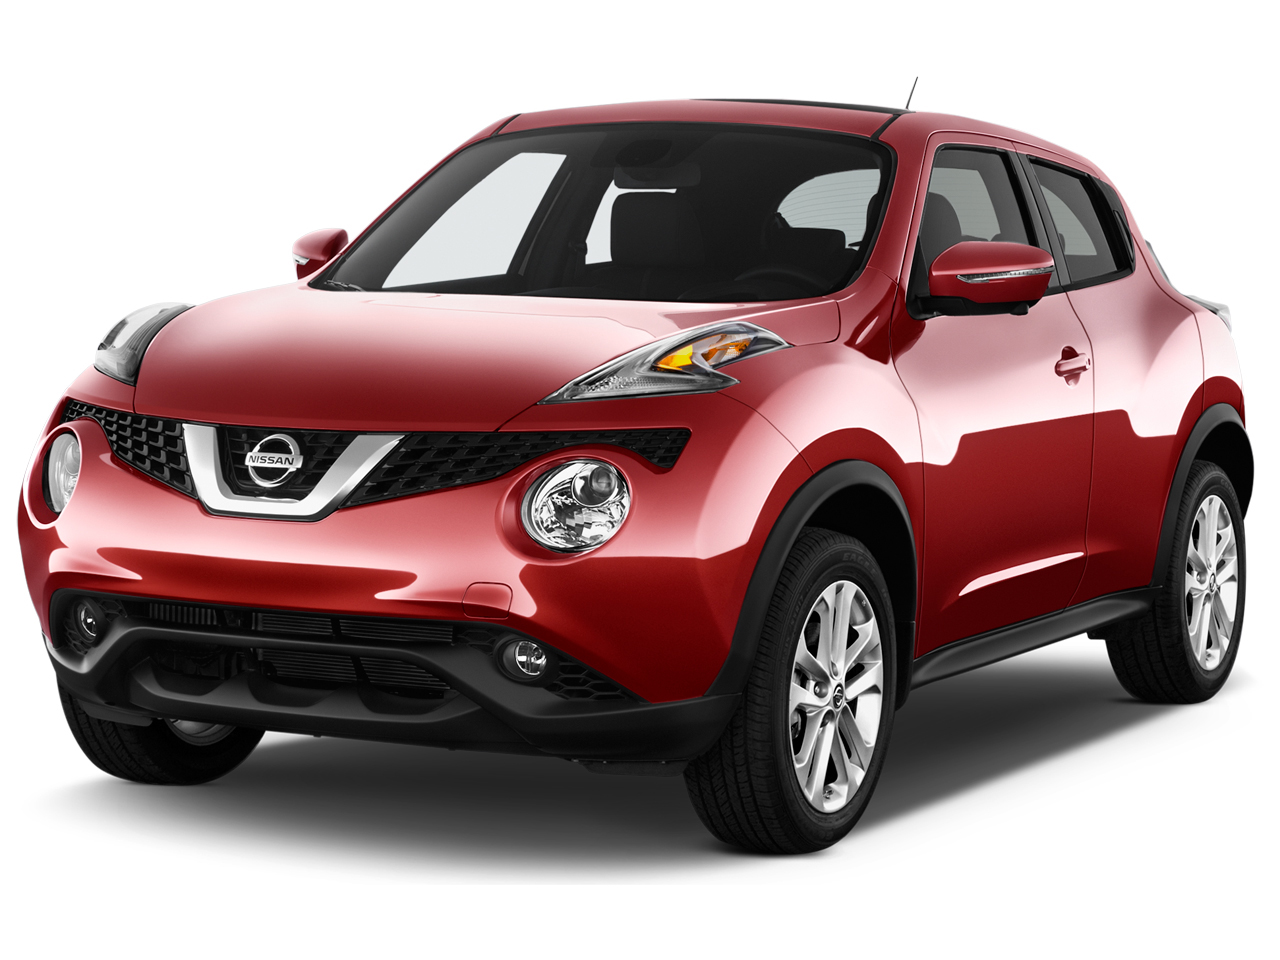 New Nissan Juke New And Used Nissan Juke Prices Photos Reviews Specs